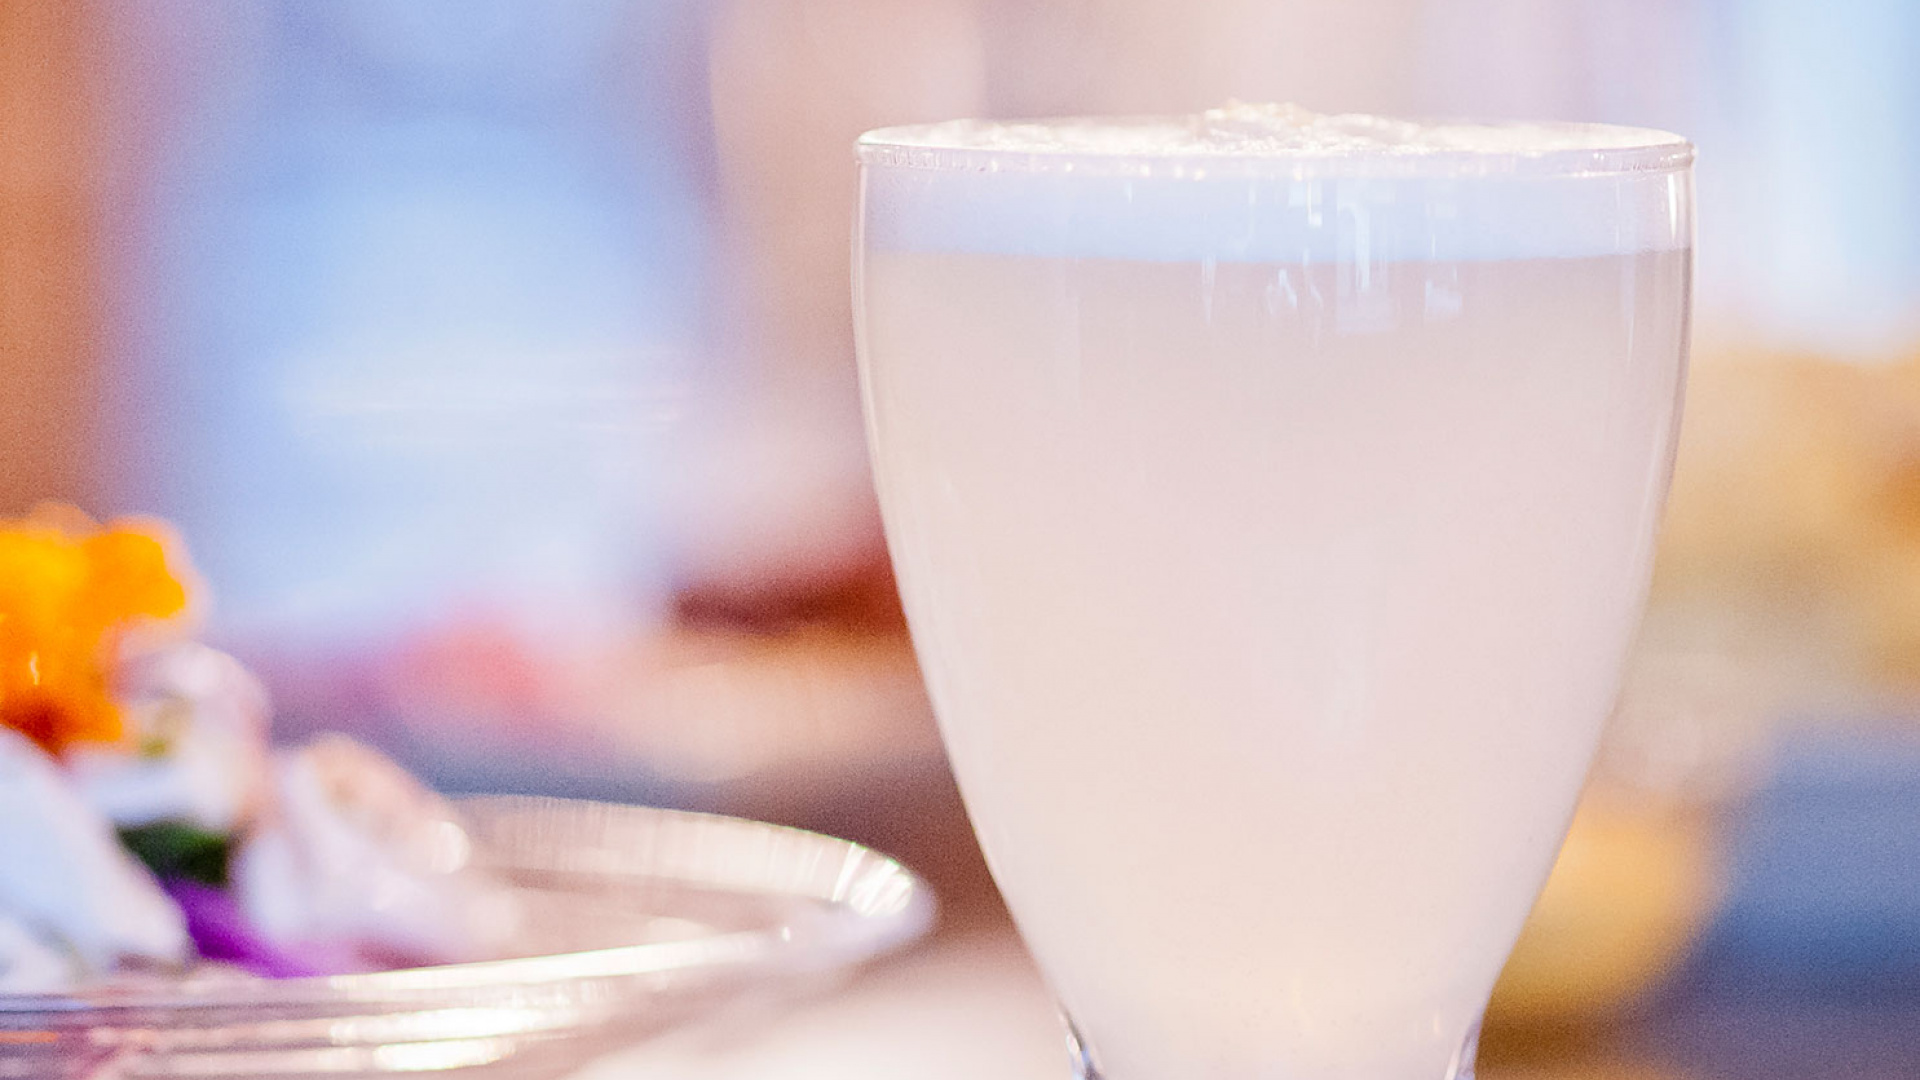 Ceviche's pisco sour recipe